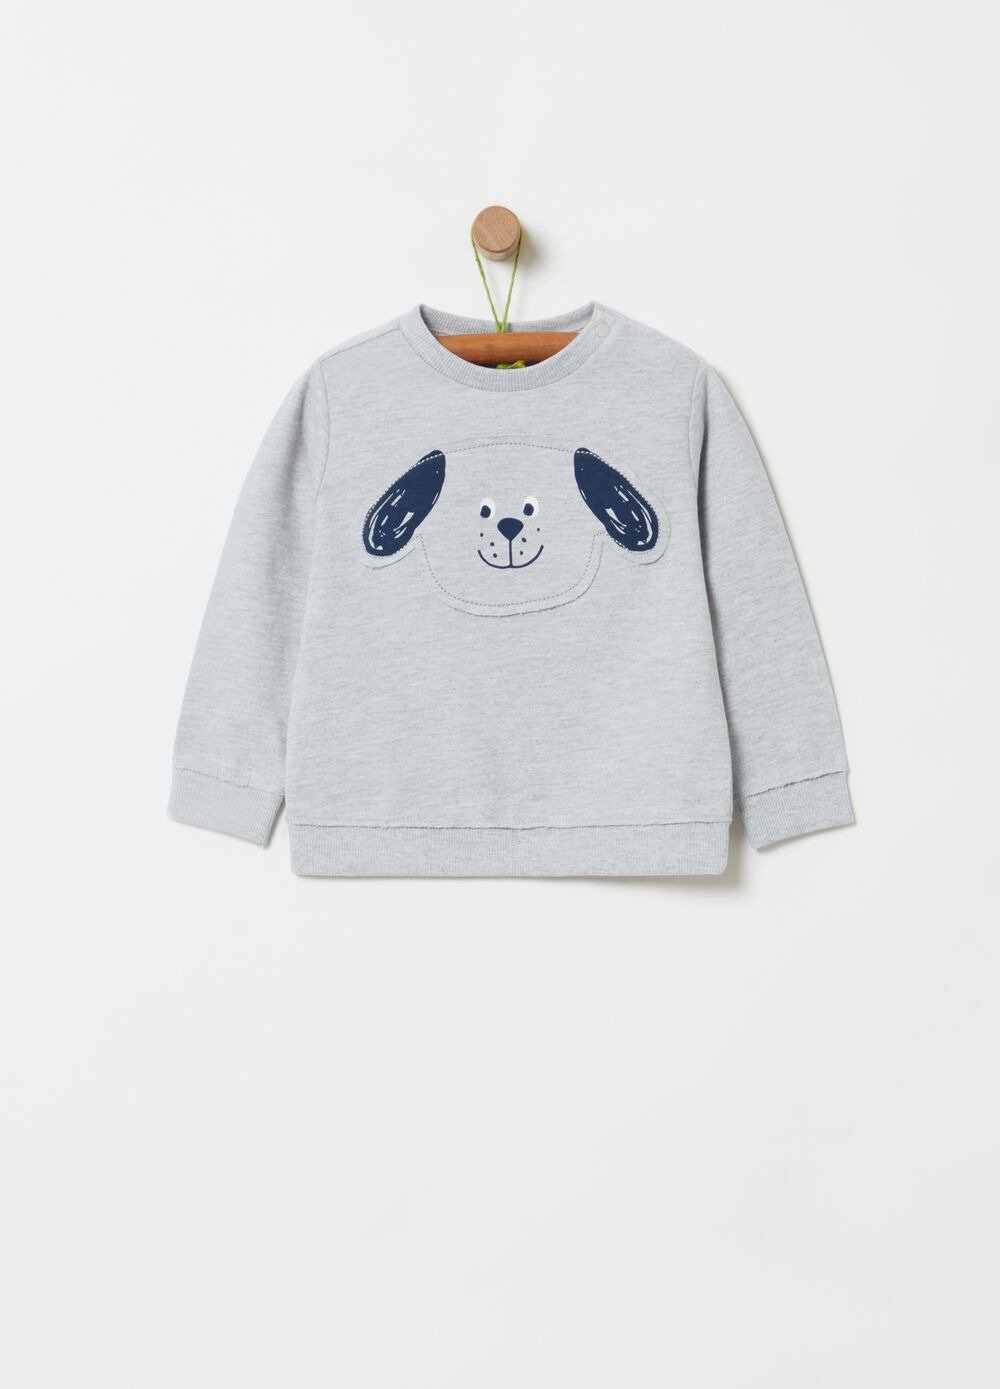 Sweatshirt in mélange organic cotton and viscose